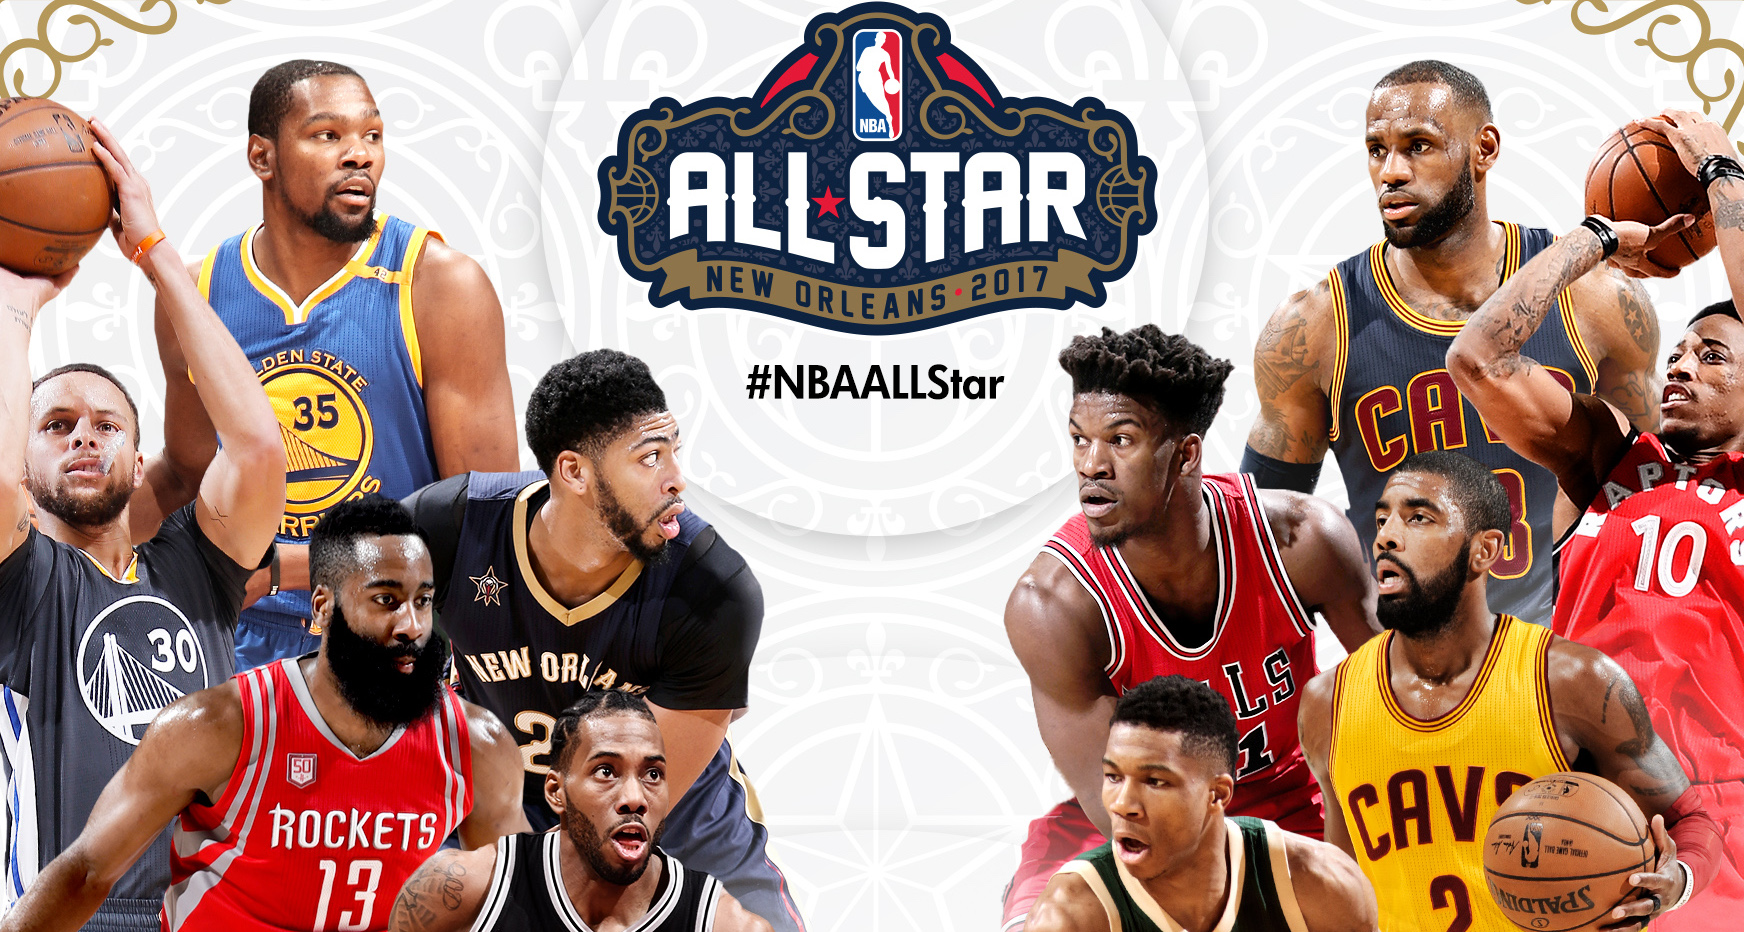 NBA All-Star Game 2019 - News, schedule, rosters, results